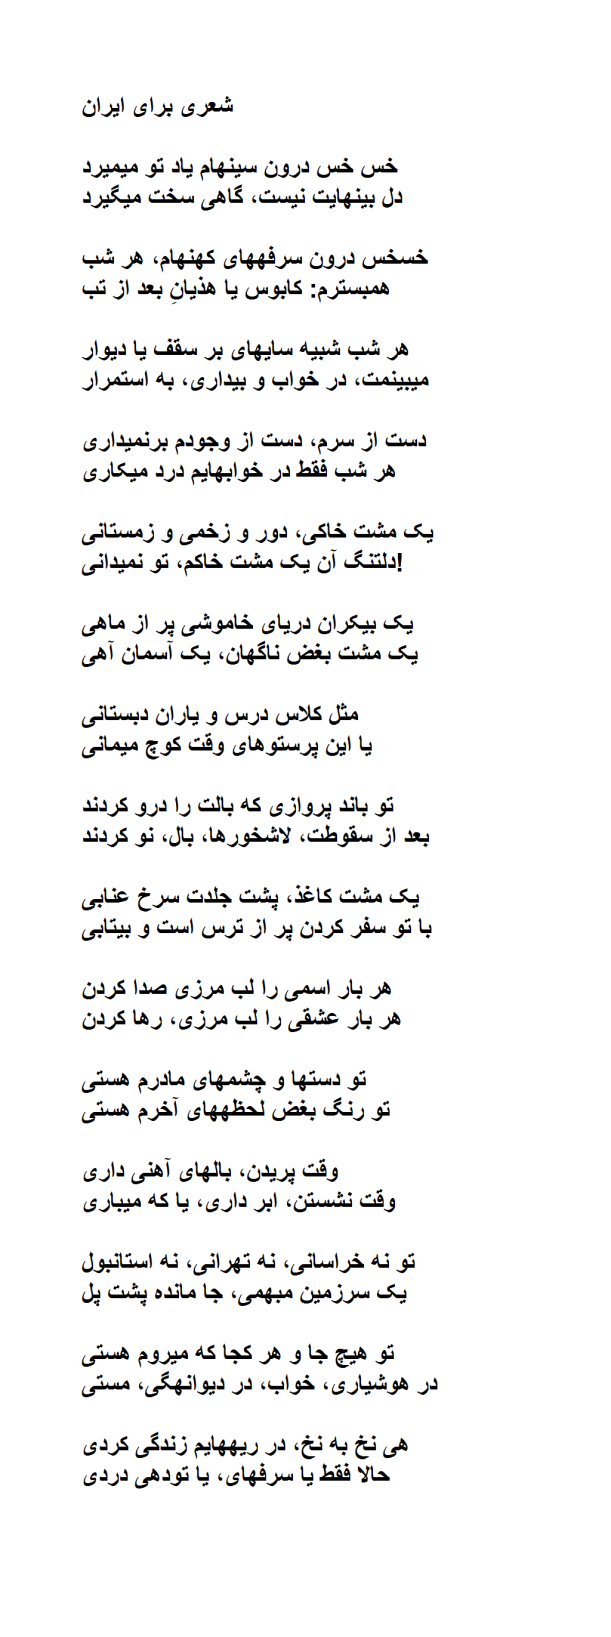 A Poem for Iran PNG